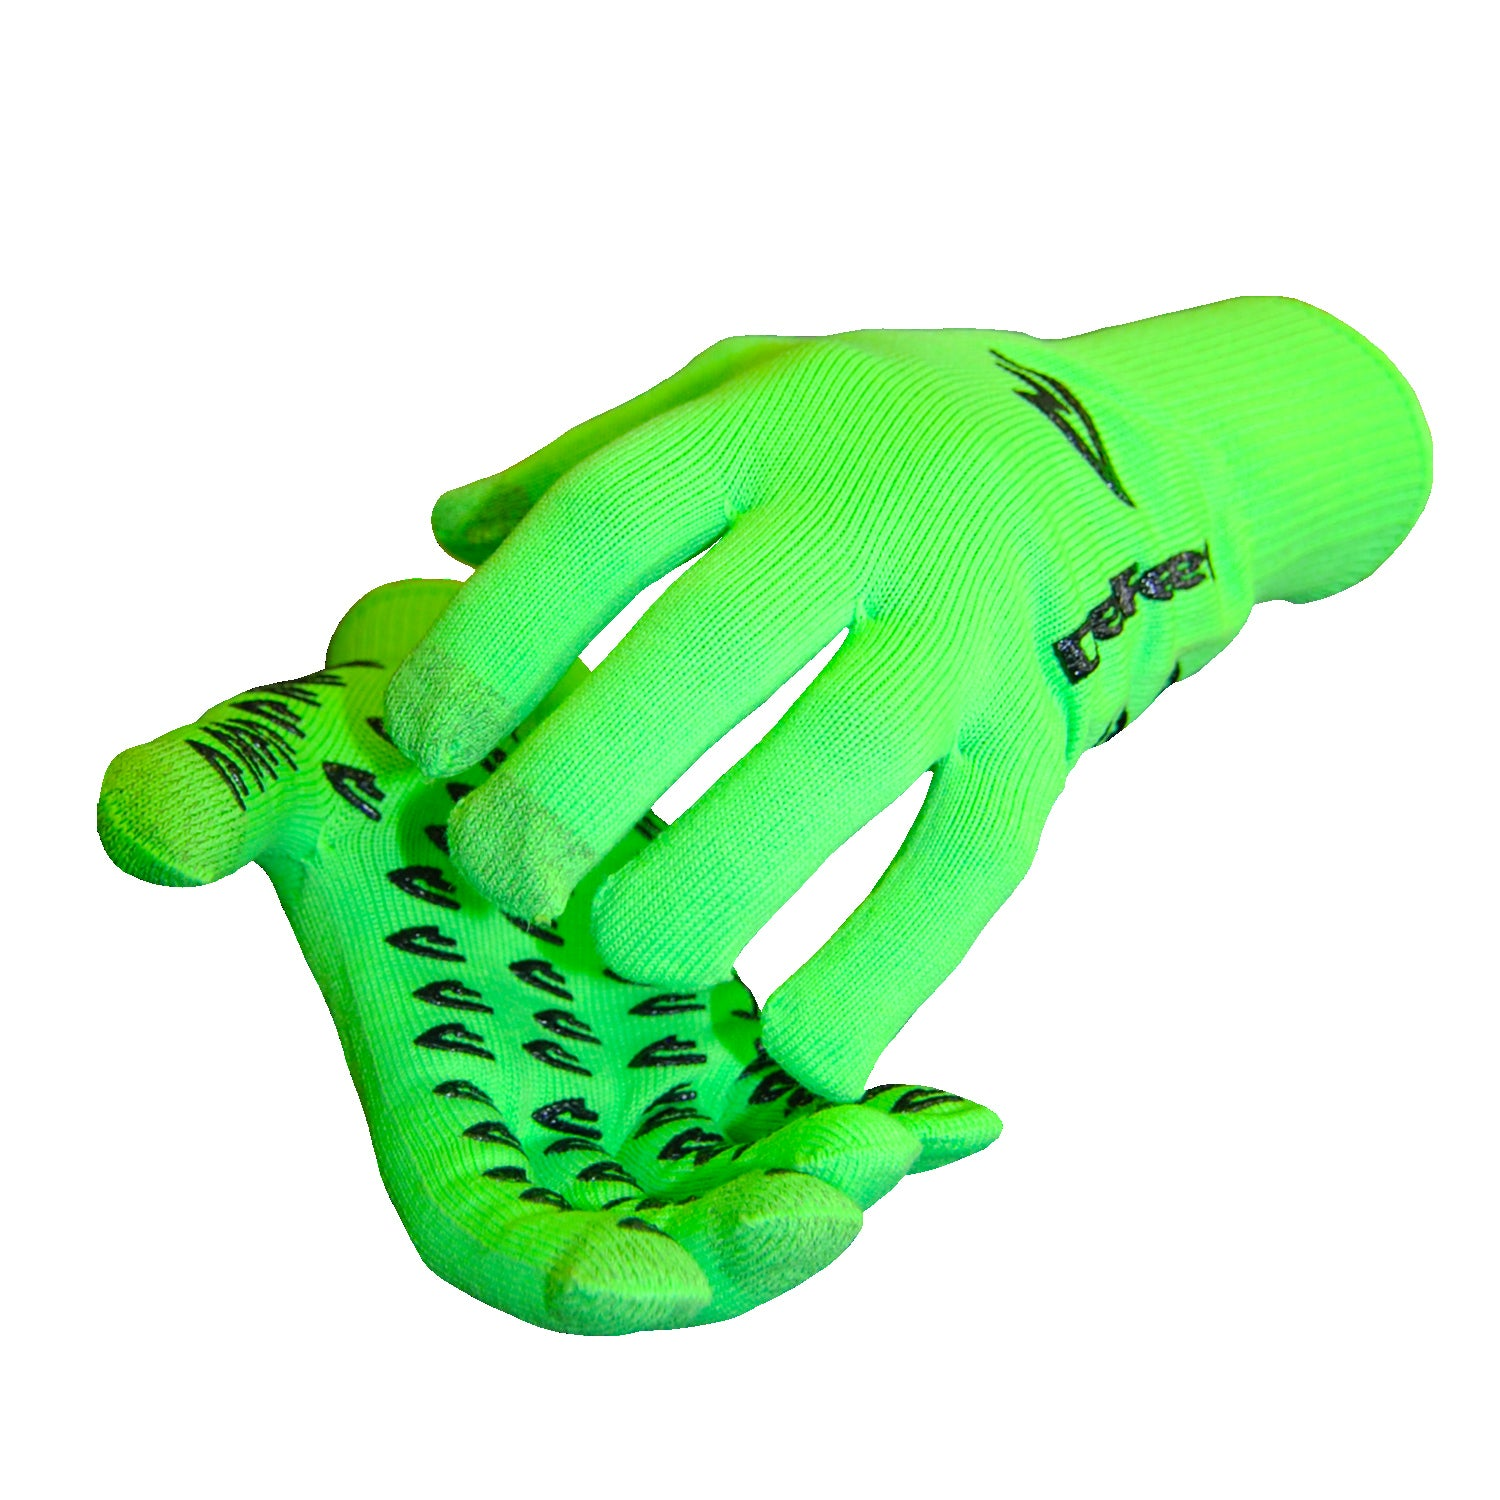 Duraglove ET Neon Green w/Black Grippies